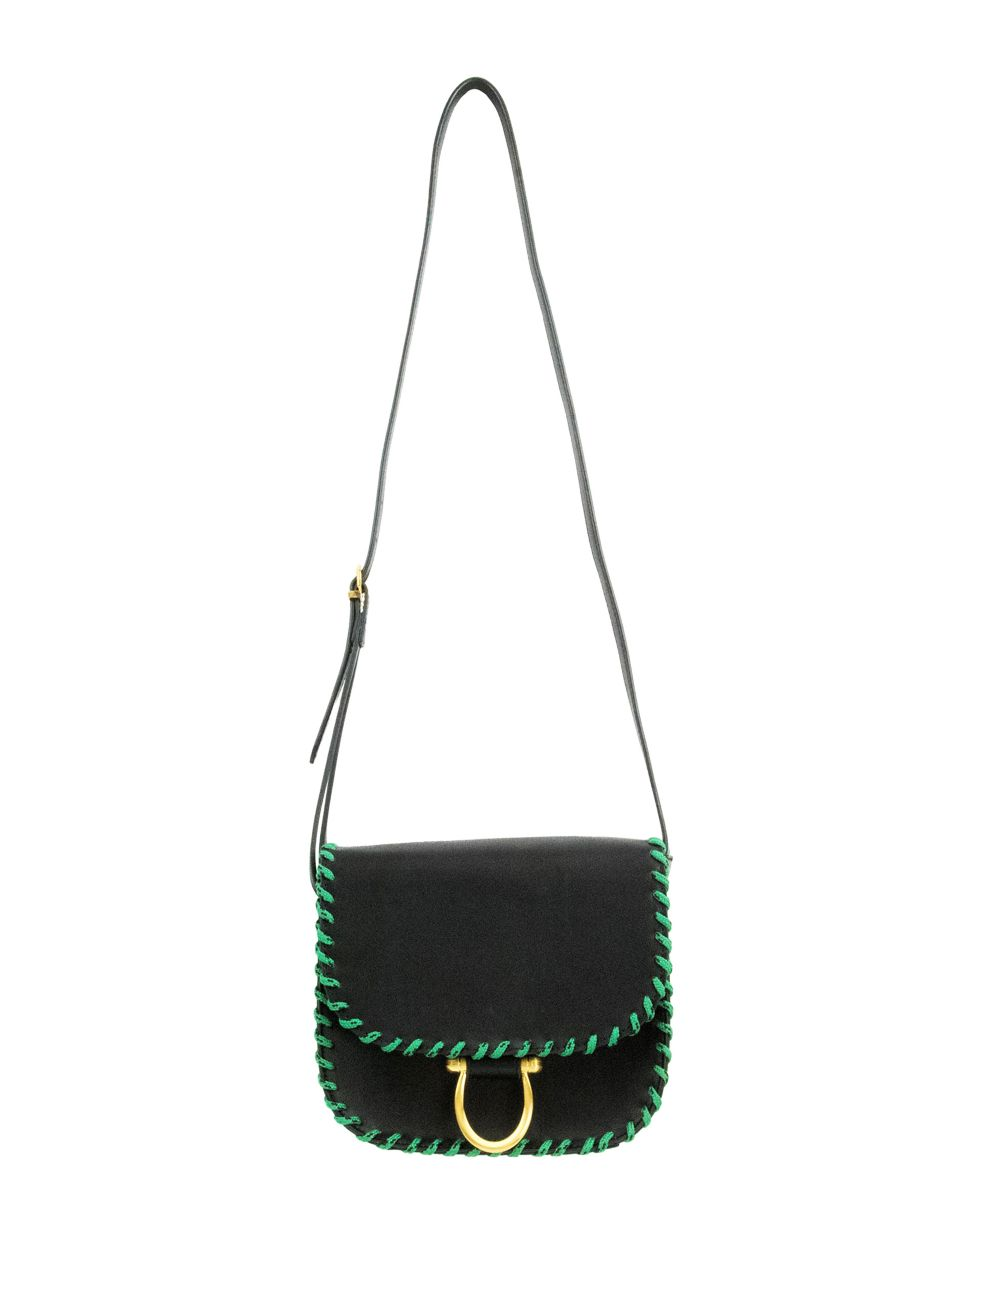 Circus Ezra Vegan Leather Crossbody Bag - $79 | $27.20 on sale, Circus by Sam Edelman.